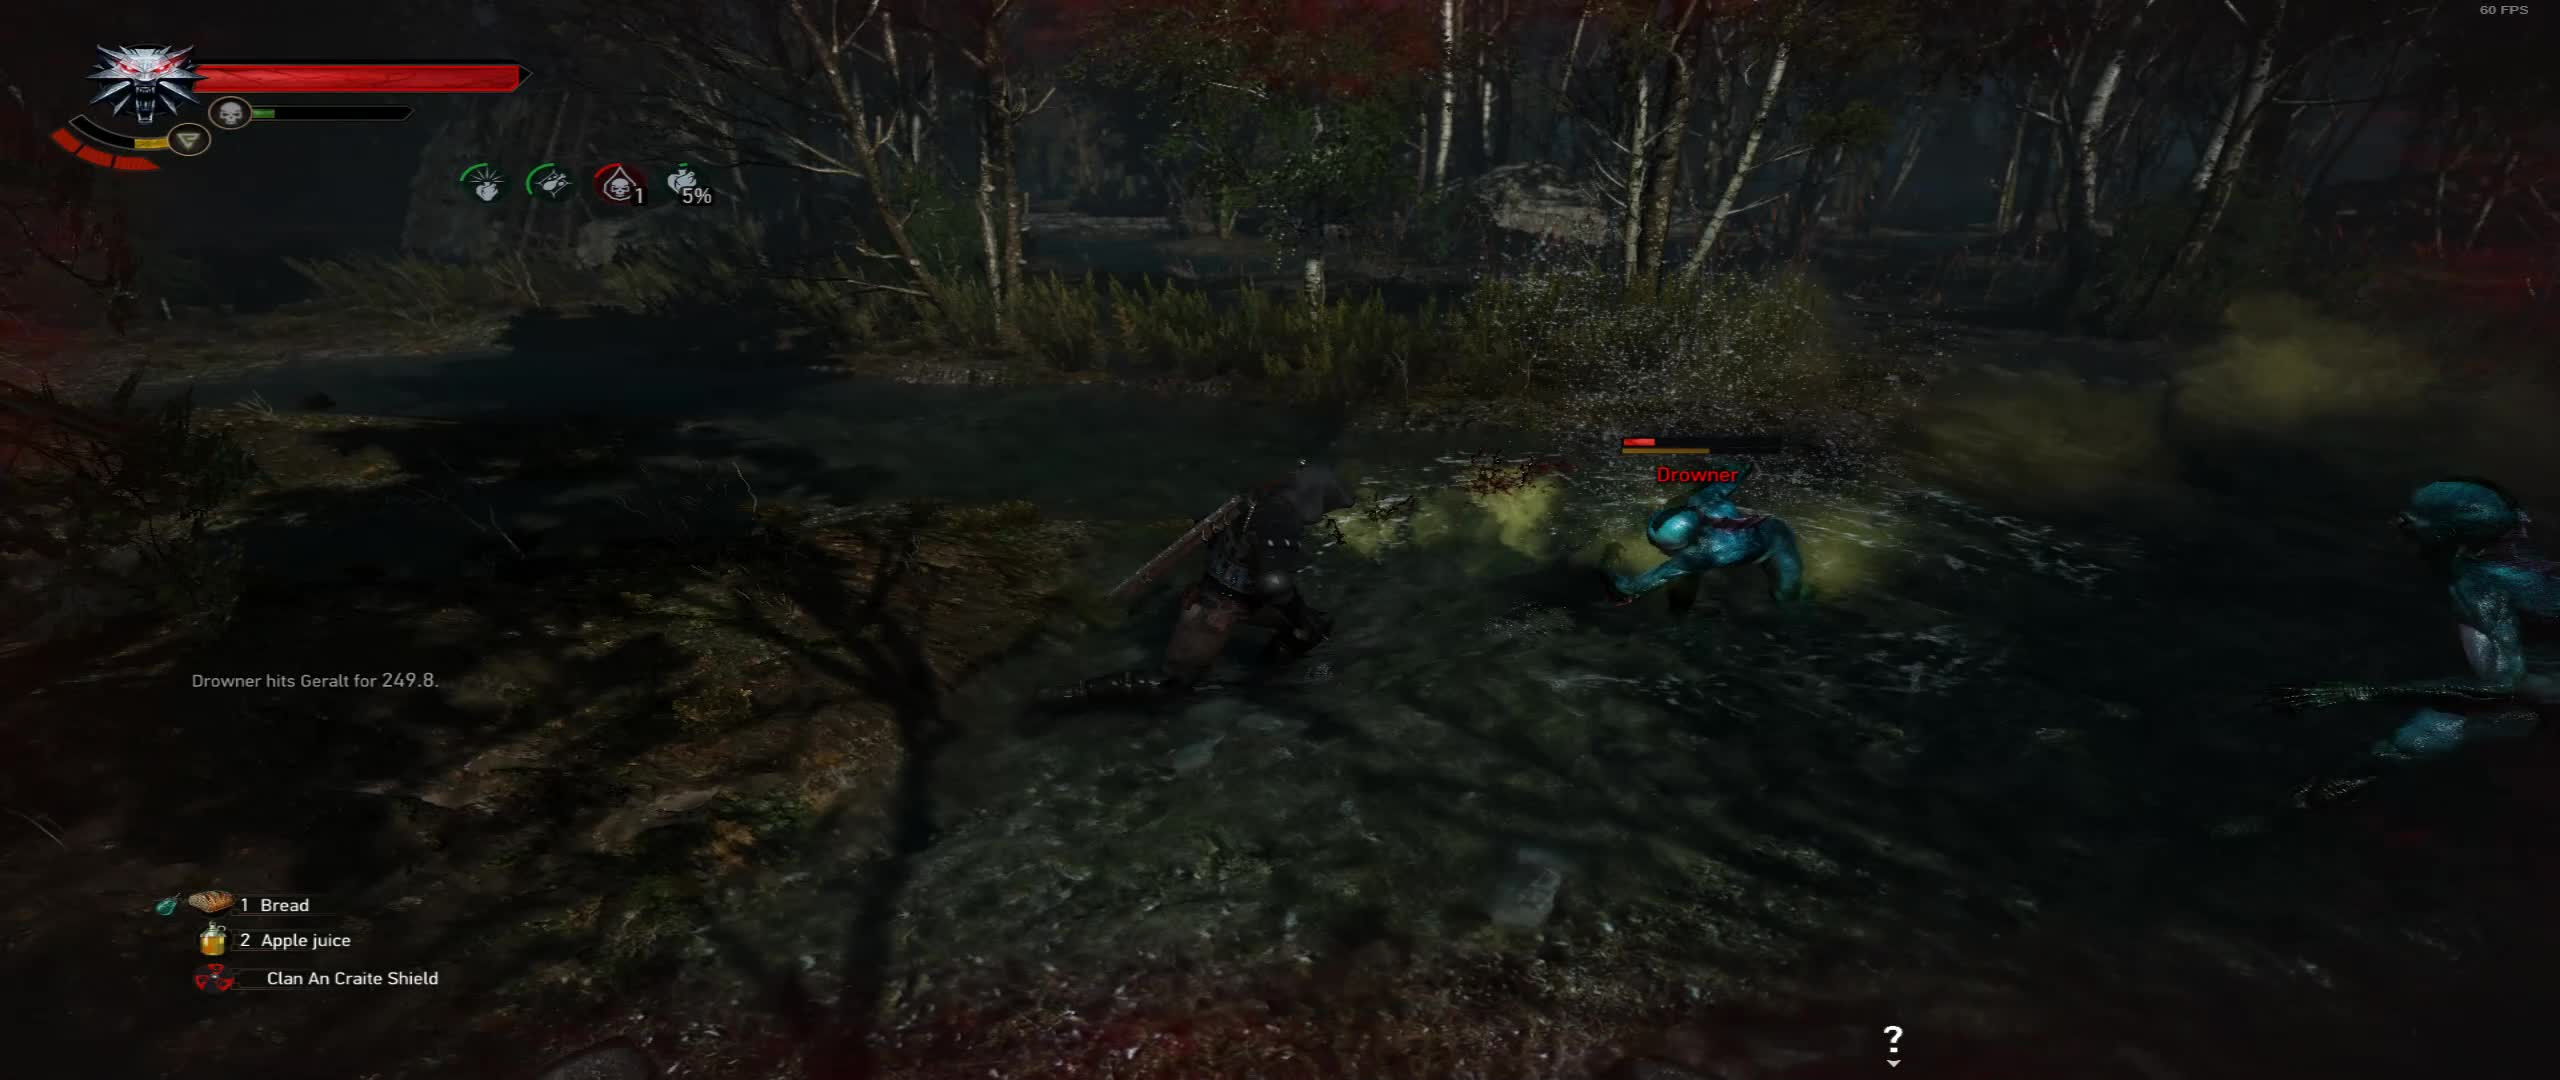 thewitcher3, The Witcher 3 2018.10.23 - 16.07.44.02.DVR GIFs